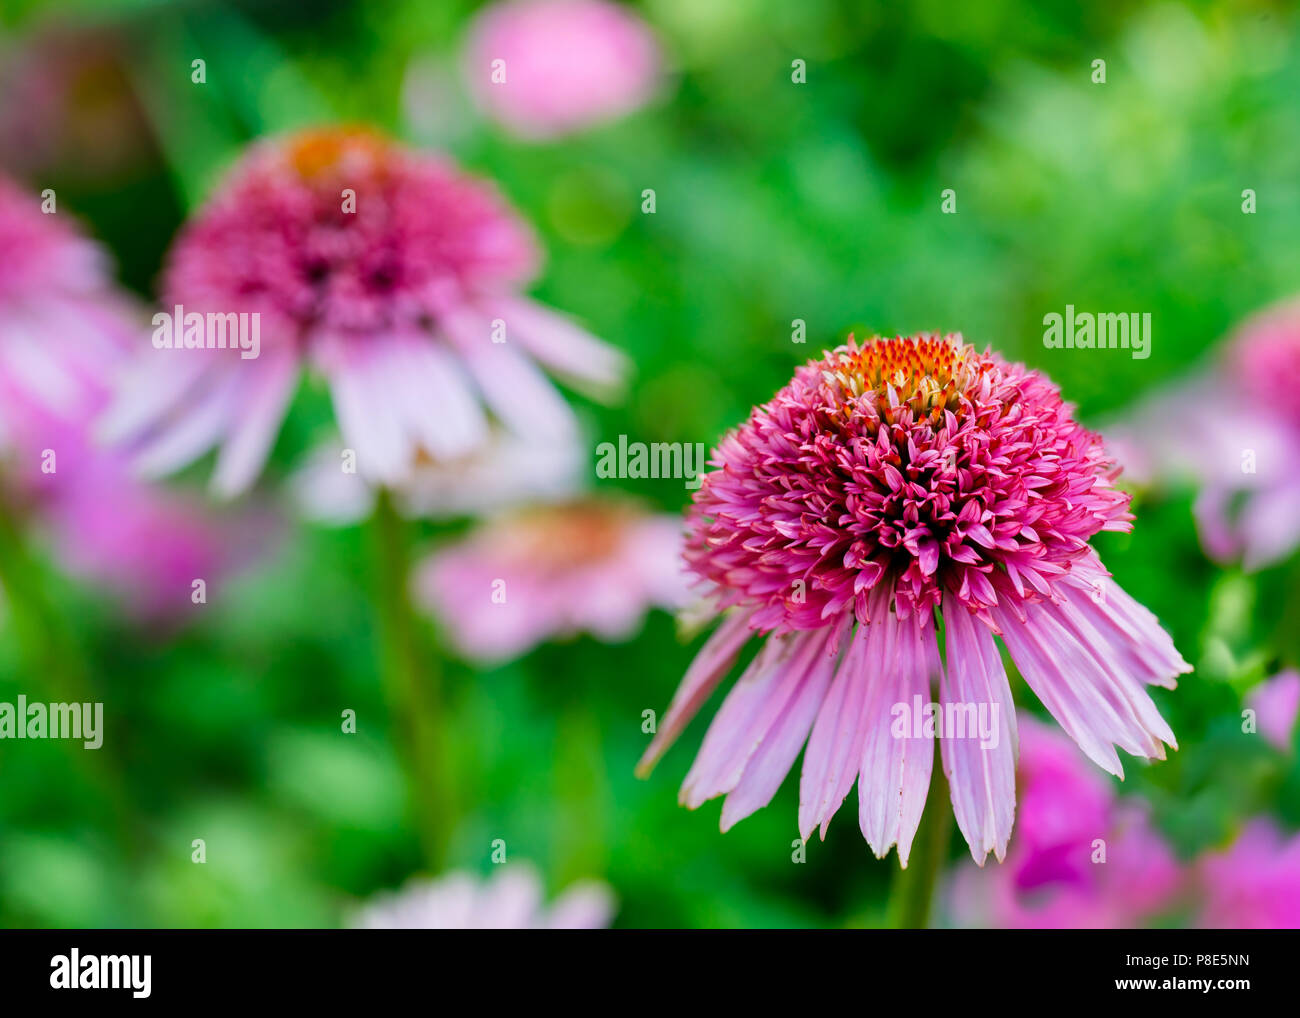 Hybrid dwarf cone flower in the summer garden. - Stock Image